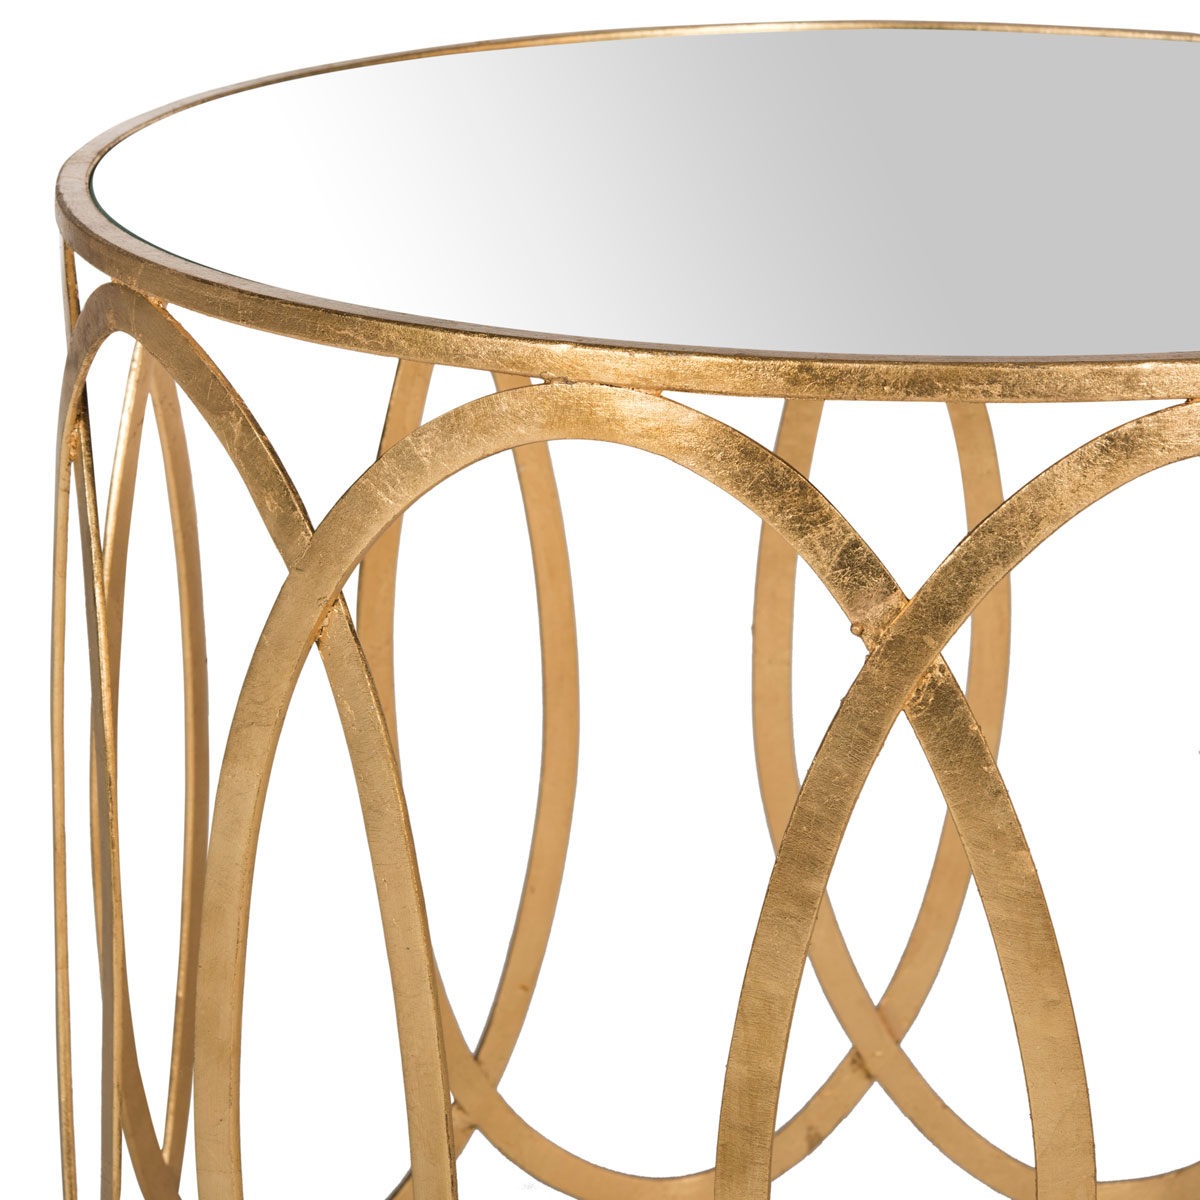 gold accent table end tables safavieh detail with drawer share this product champagne mirrored furniture pier one outdoor pillows small battery powered lamps threshold painted